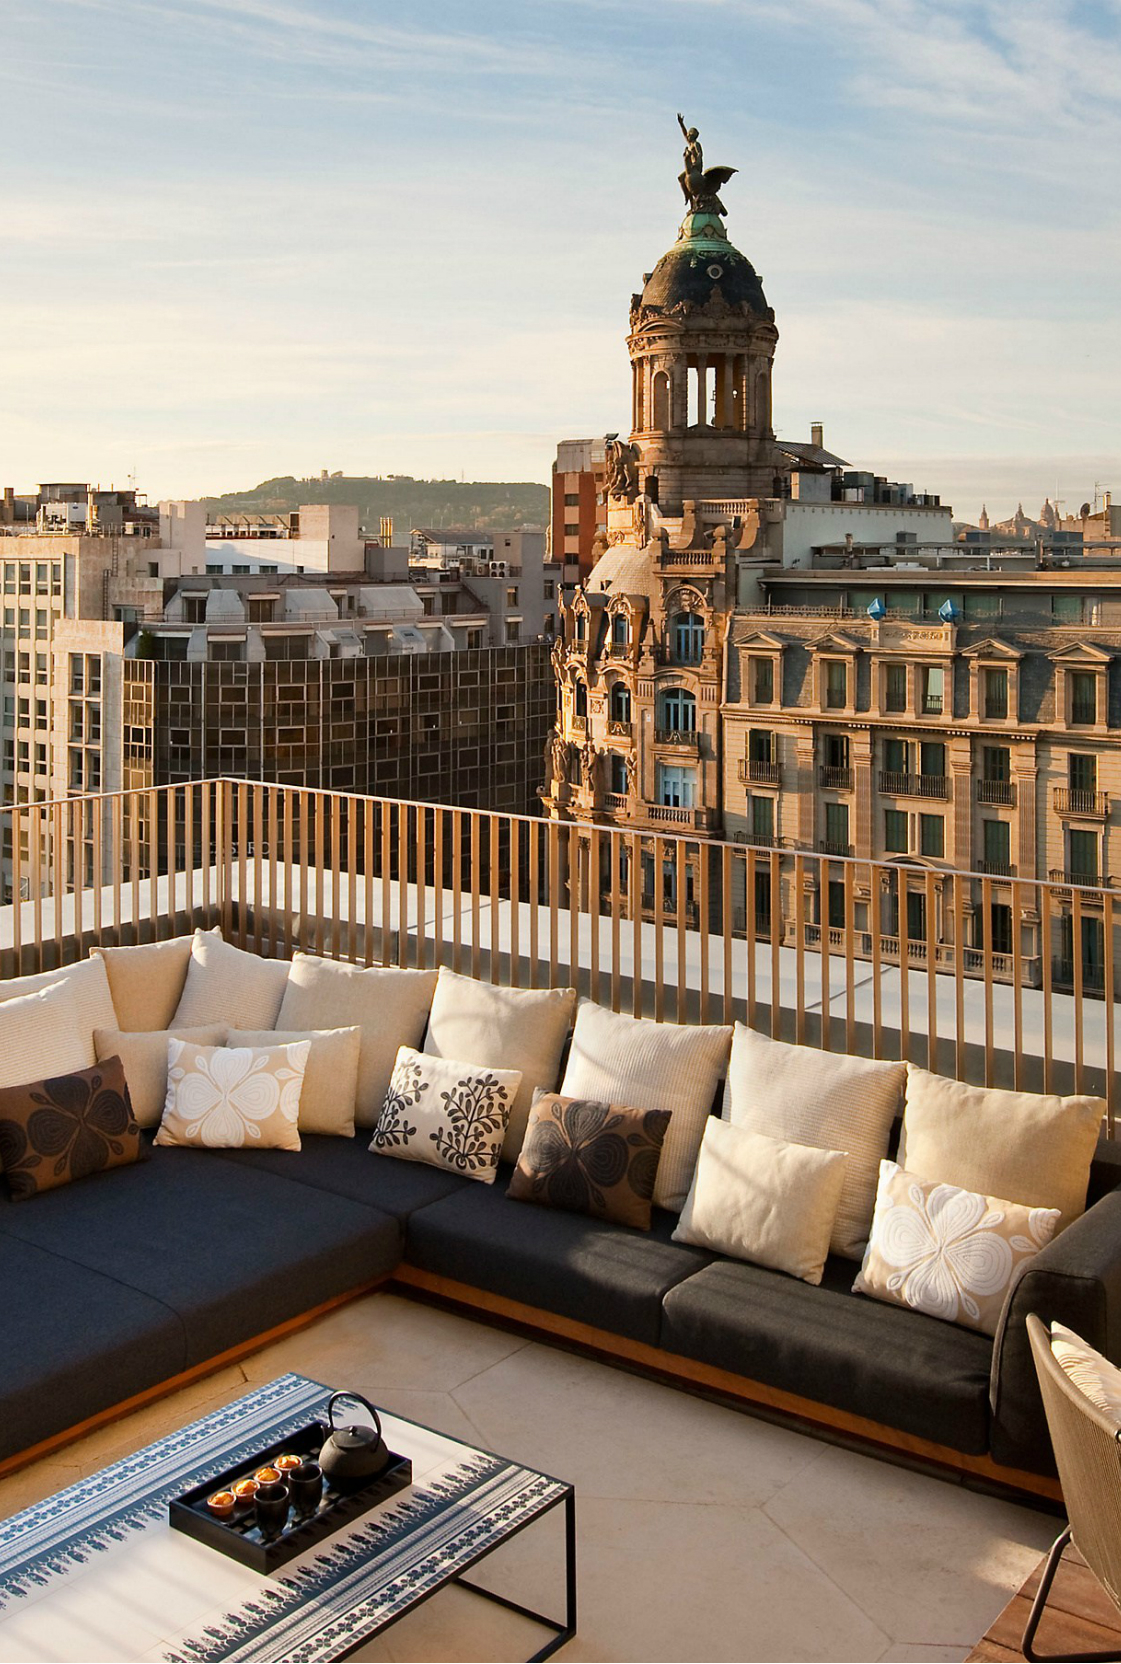 Best 5 Rooftop Bars In Barcelona | Inspirations and Ideas